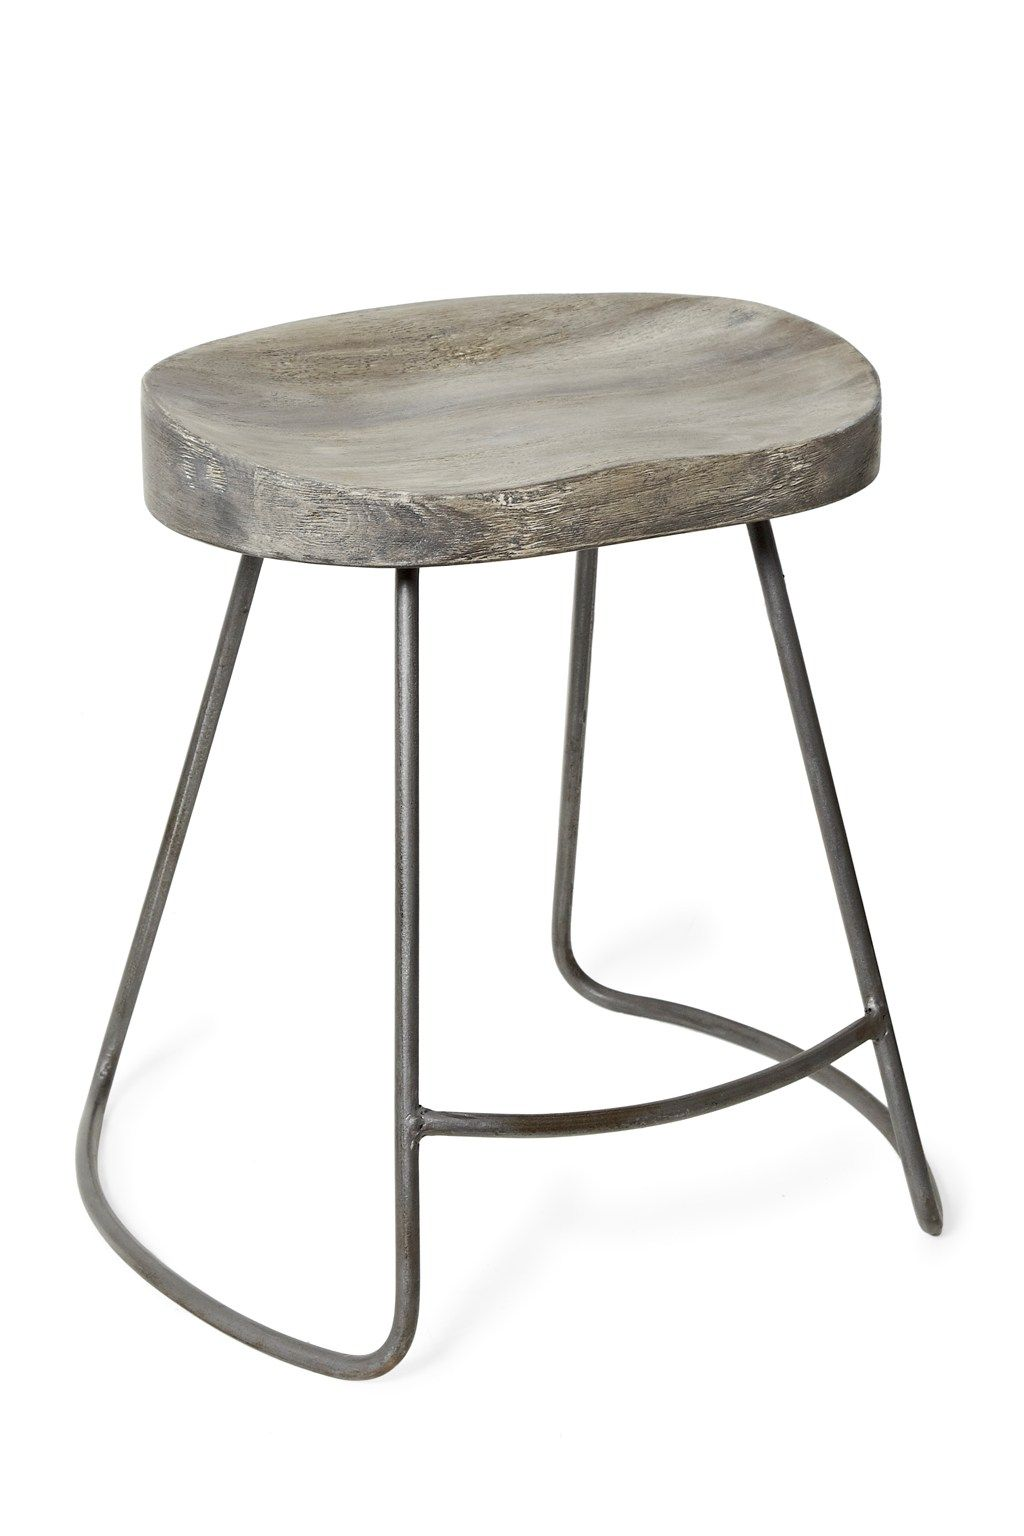 Incredible Ul Li Wood And Metal Bar Stool Li Li Salvage Grey Ocoug Best Dining Table And Chair Ideas Images Ocougorg